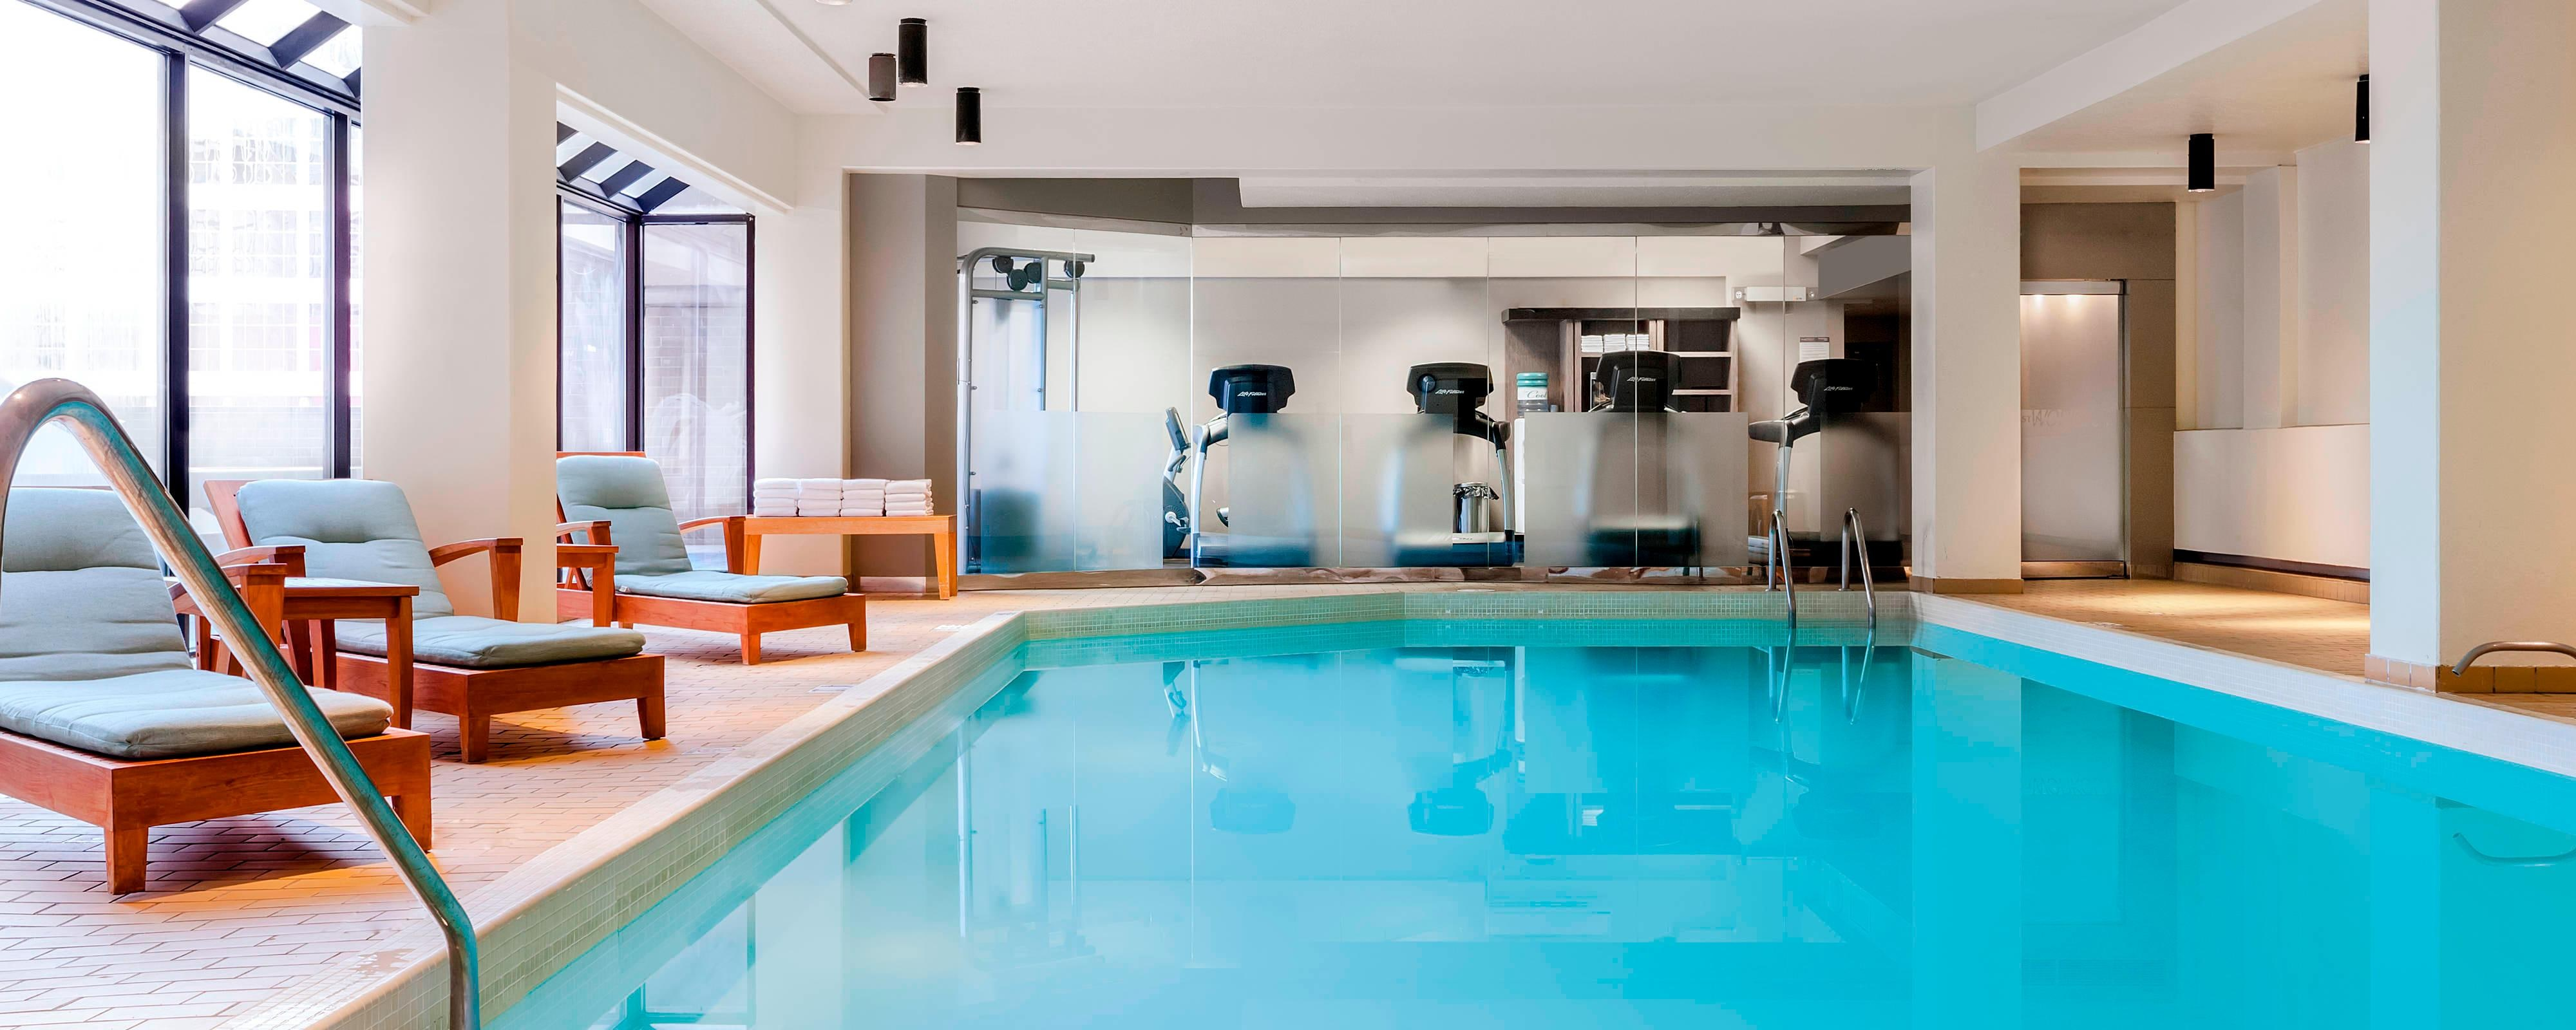 Pool - Fitness Studio